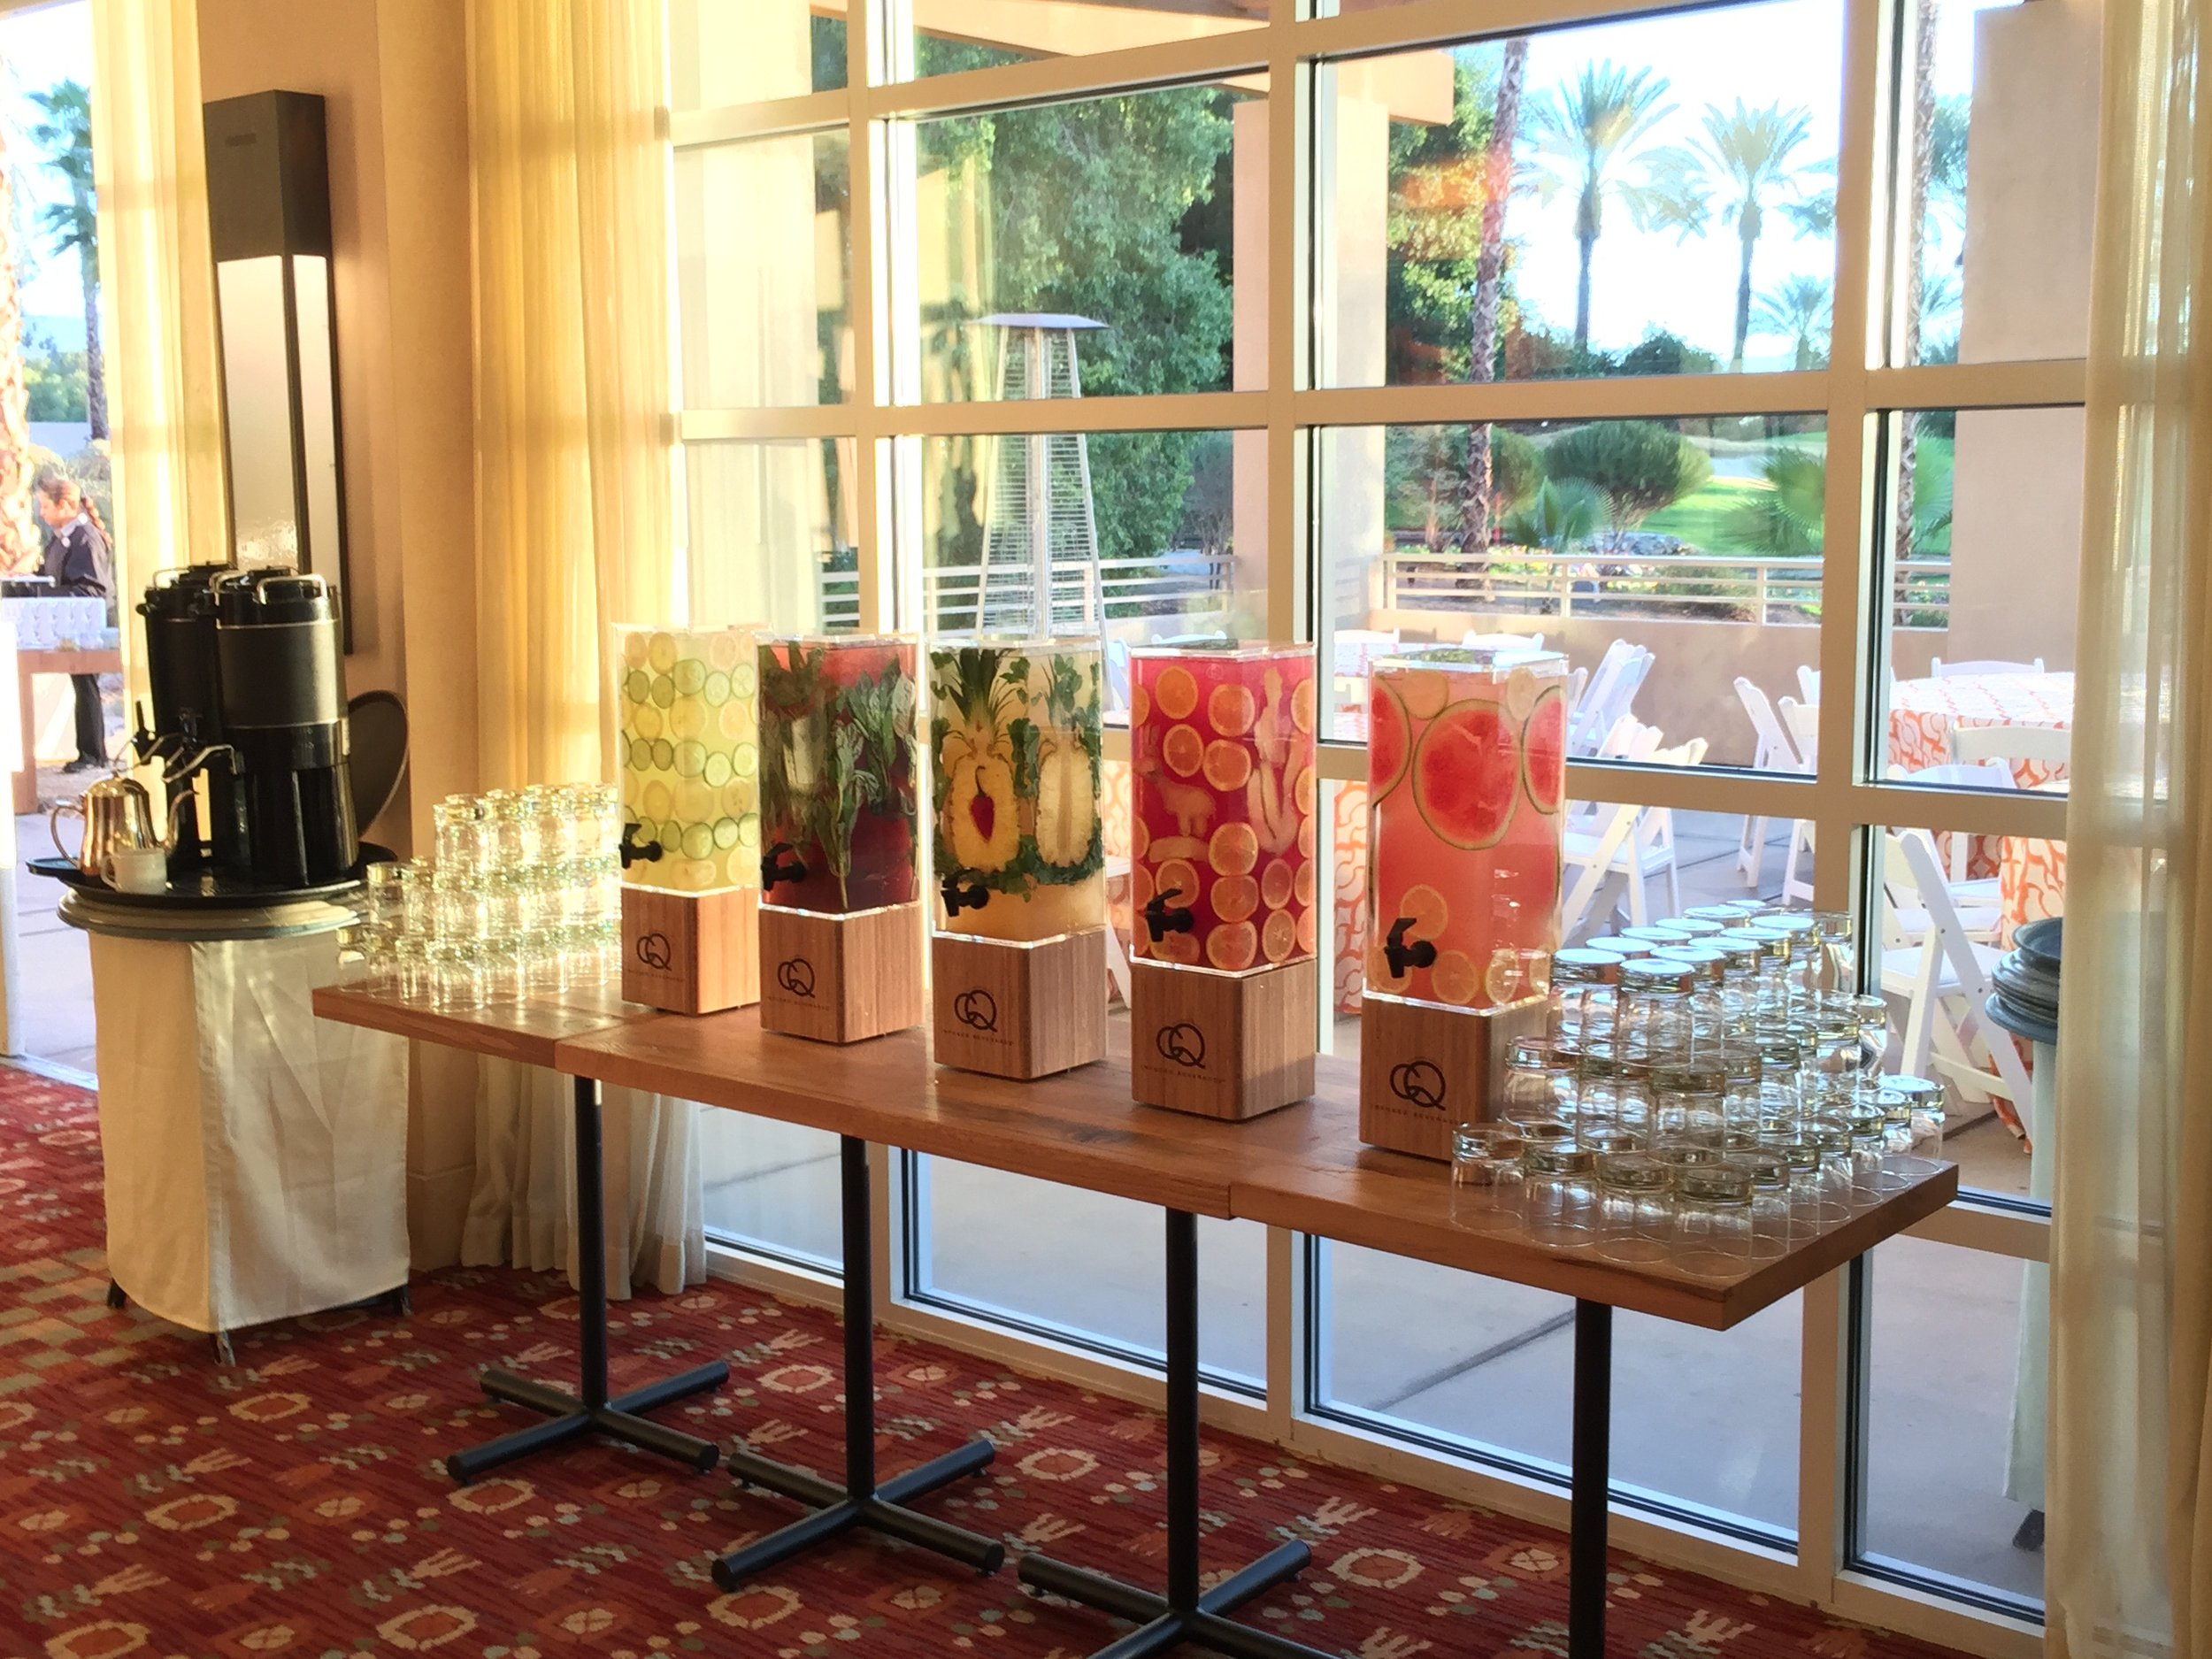 CQ Infused Waters at Hyatt's Owners Meeting - Hyatt Regency Indian Wells, California